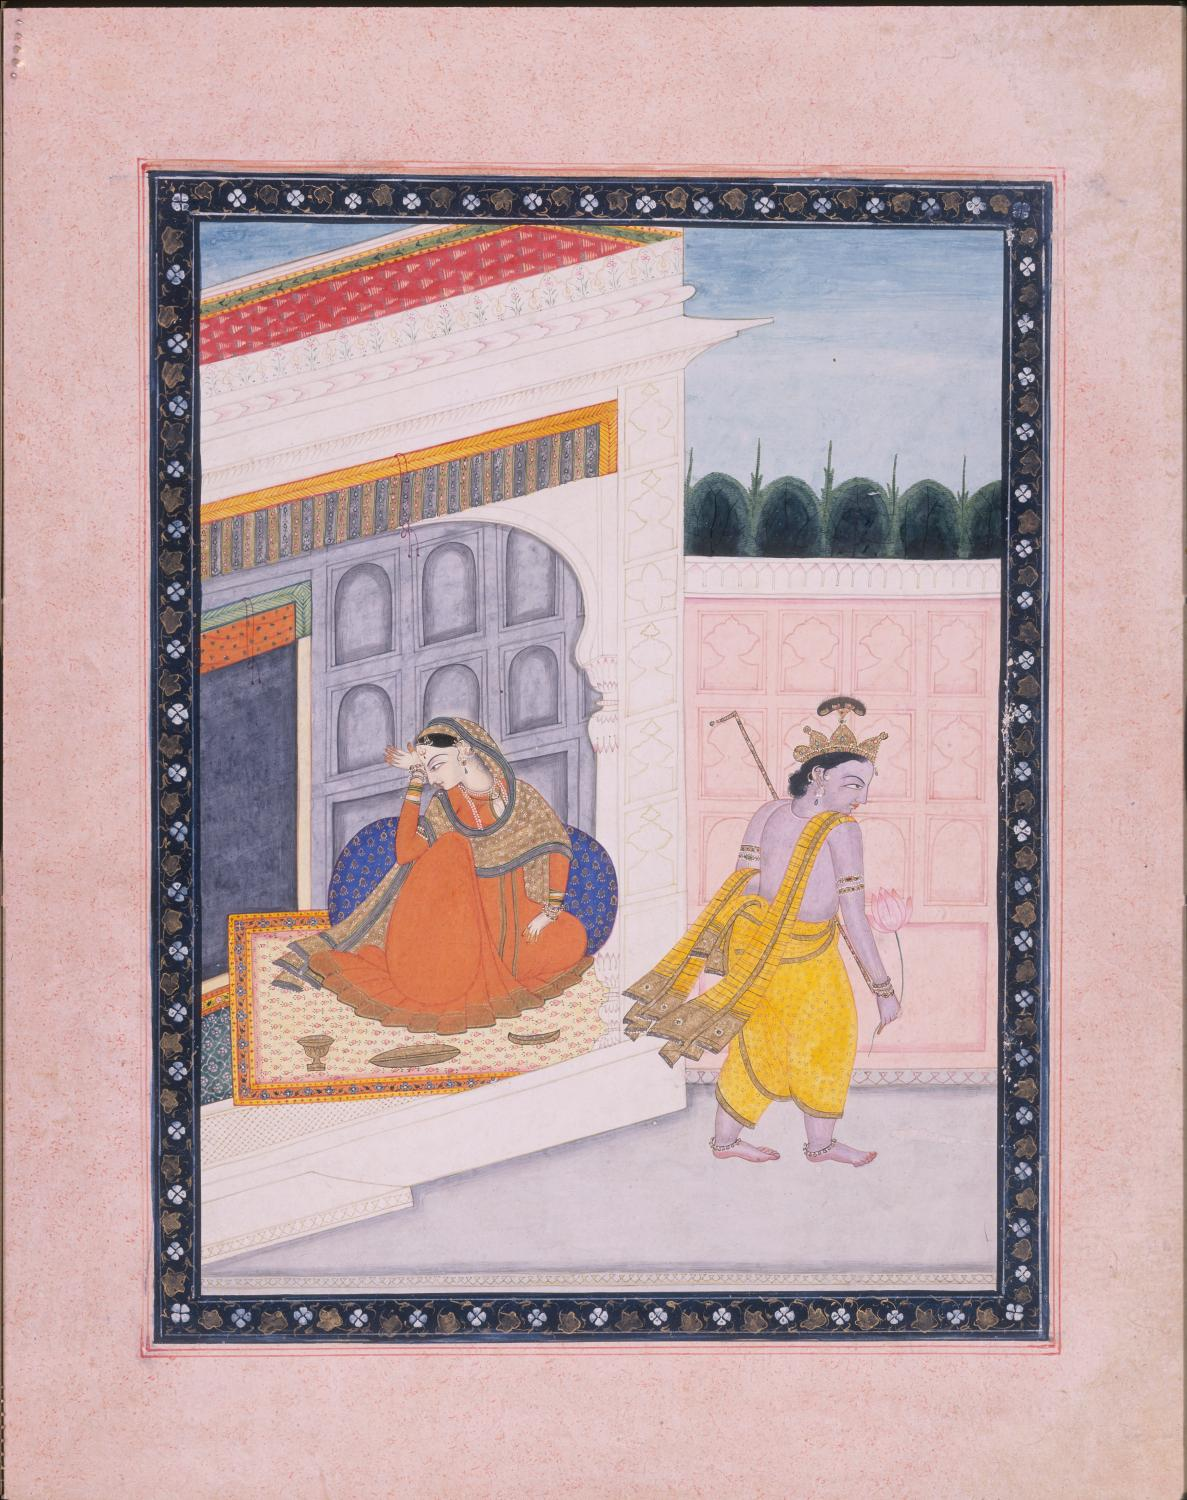 Krishna Leaves Radha. India, Guler-Kangra (18th century). Opaque color on paper. 8 1/2 x 6 1/2 inches. Gift of George P. Bickford 1970-10-5